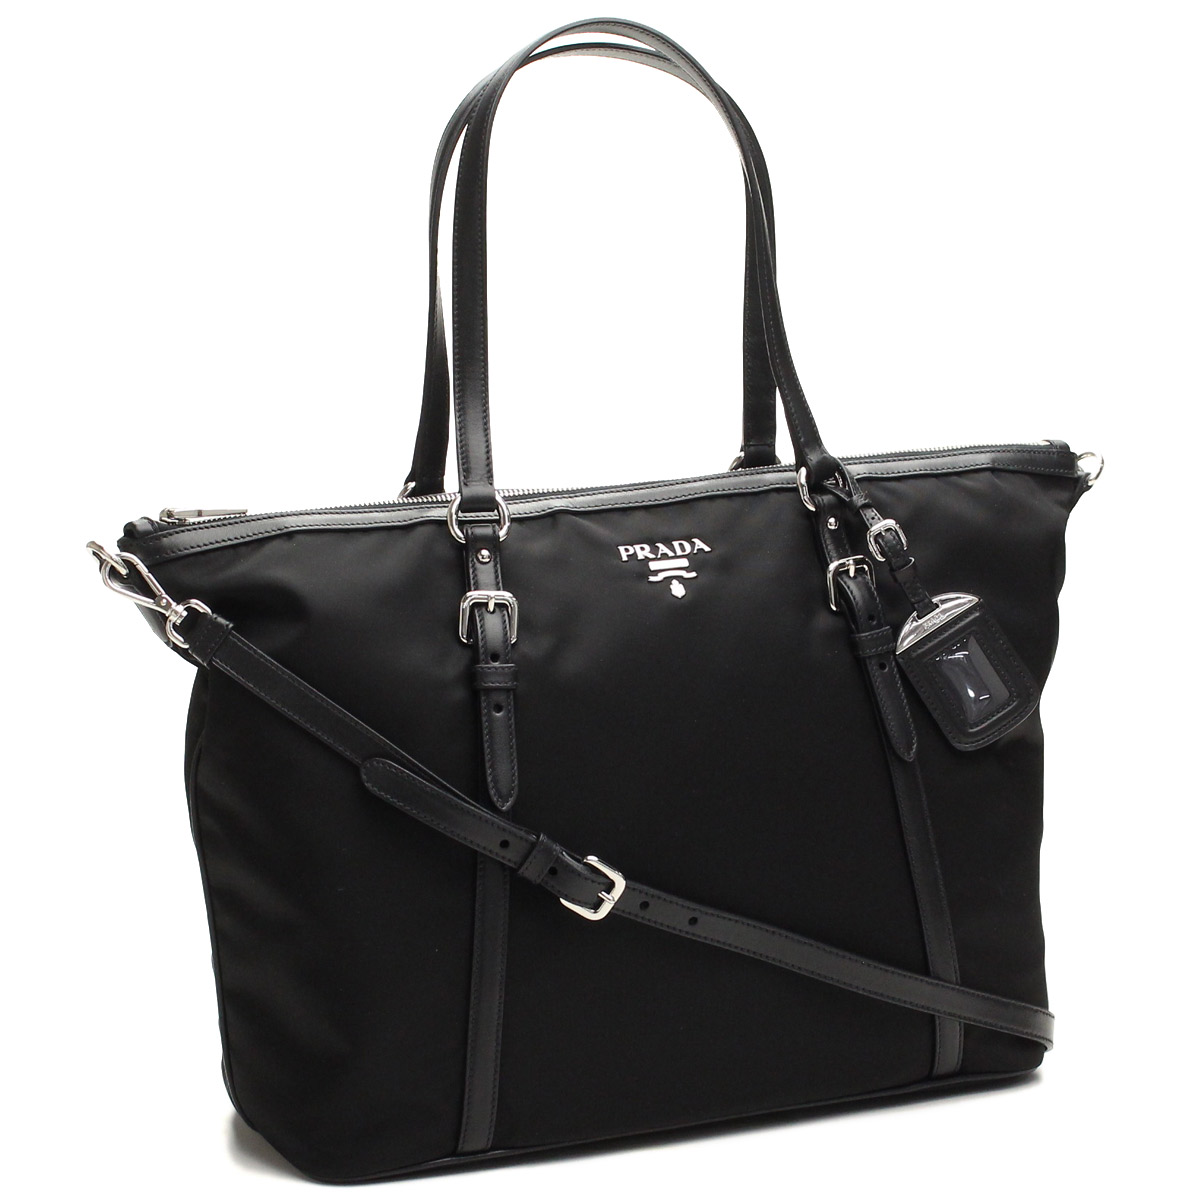 680a0009e80b Bighit The total brand wholesale  ( tax free ! )Prada outlet PRADA (OUTLET) tote  bag B4253M-O-QXO-F0002 NERO black( taxfree send by EMS authentic A brand ...